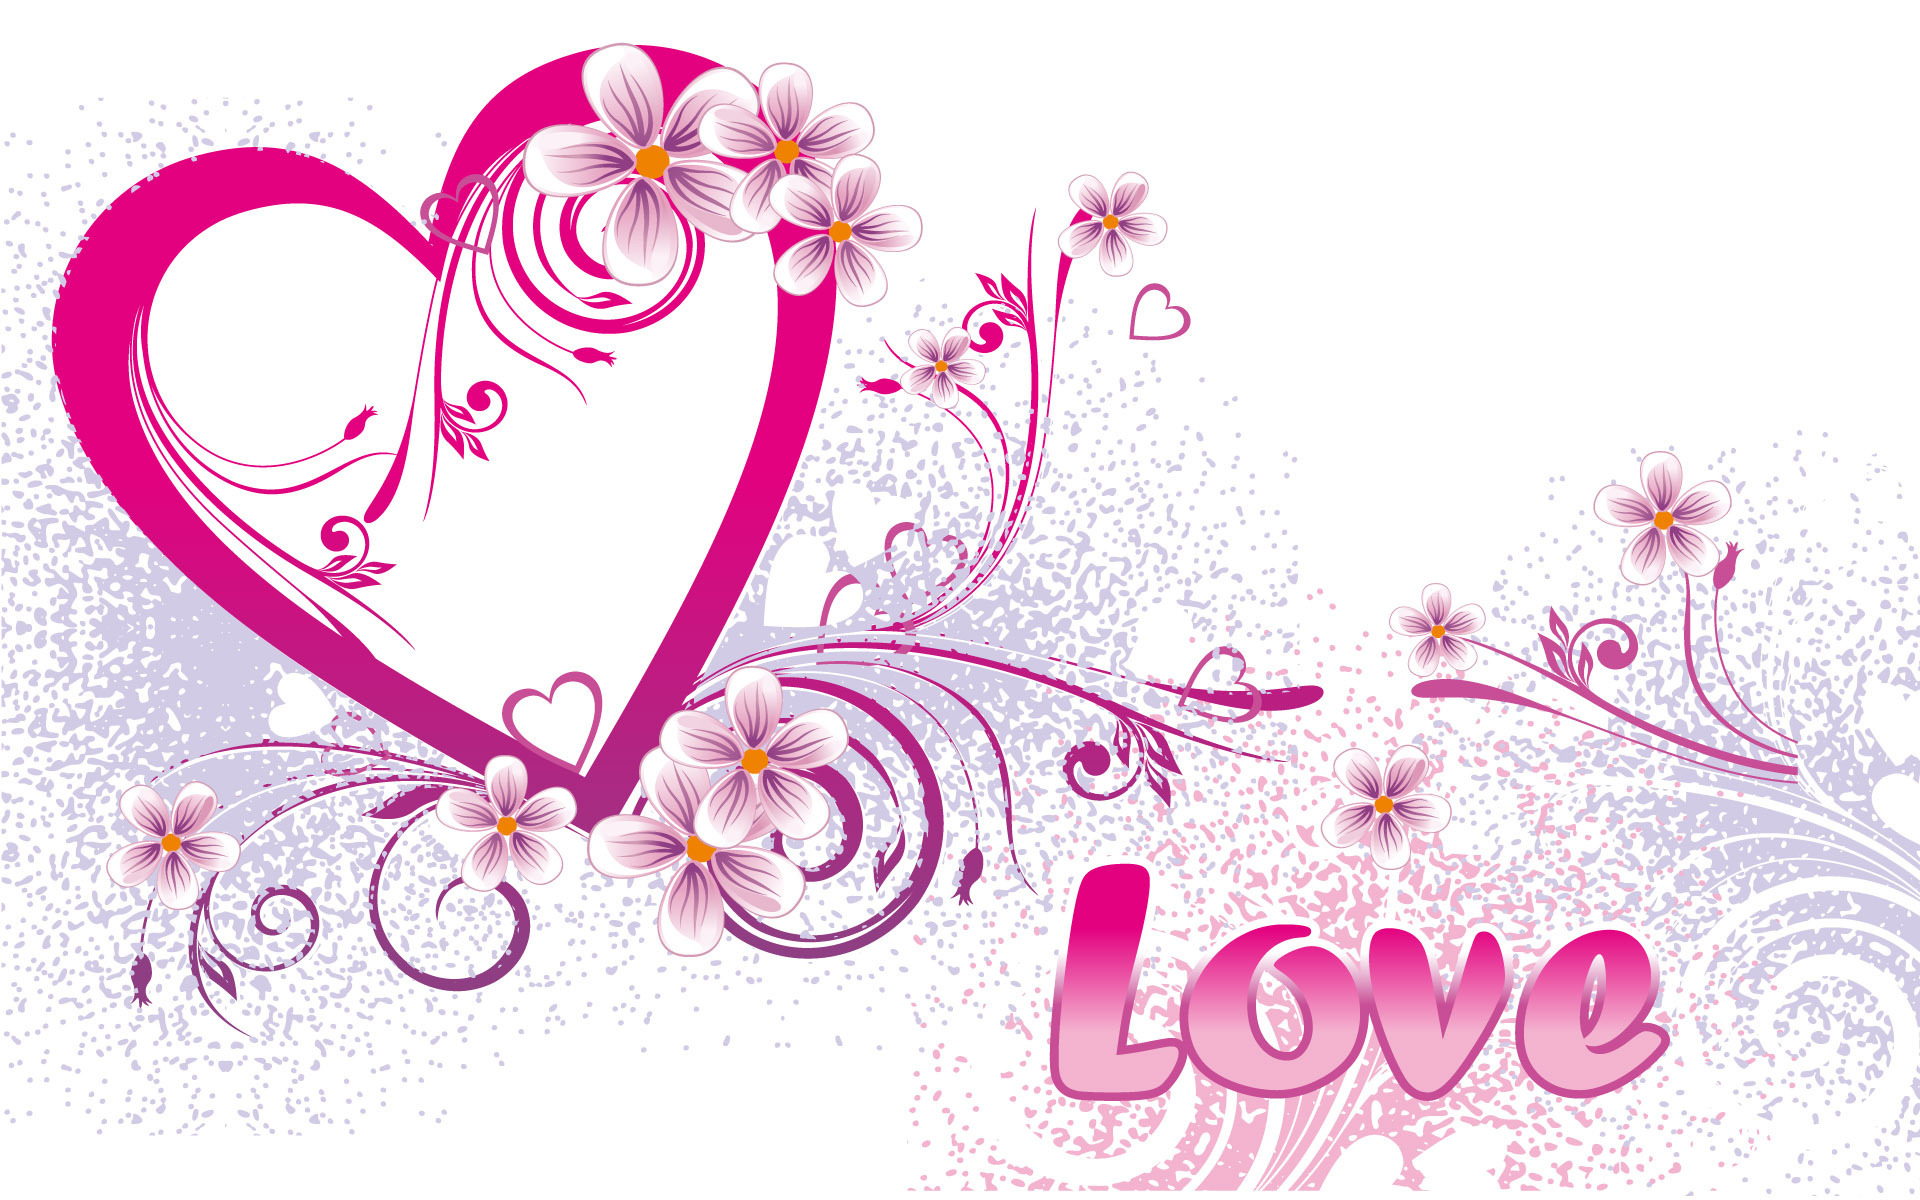 Love Wallpaper Jpg